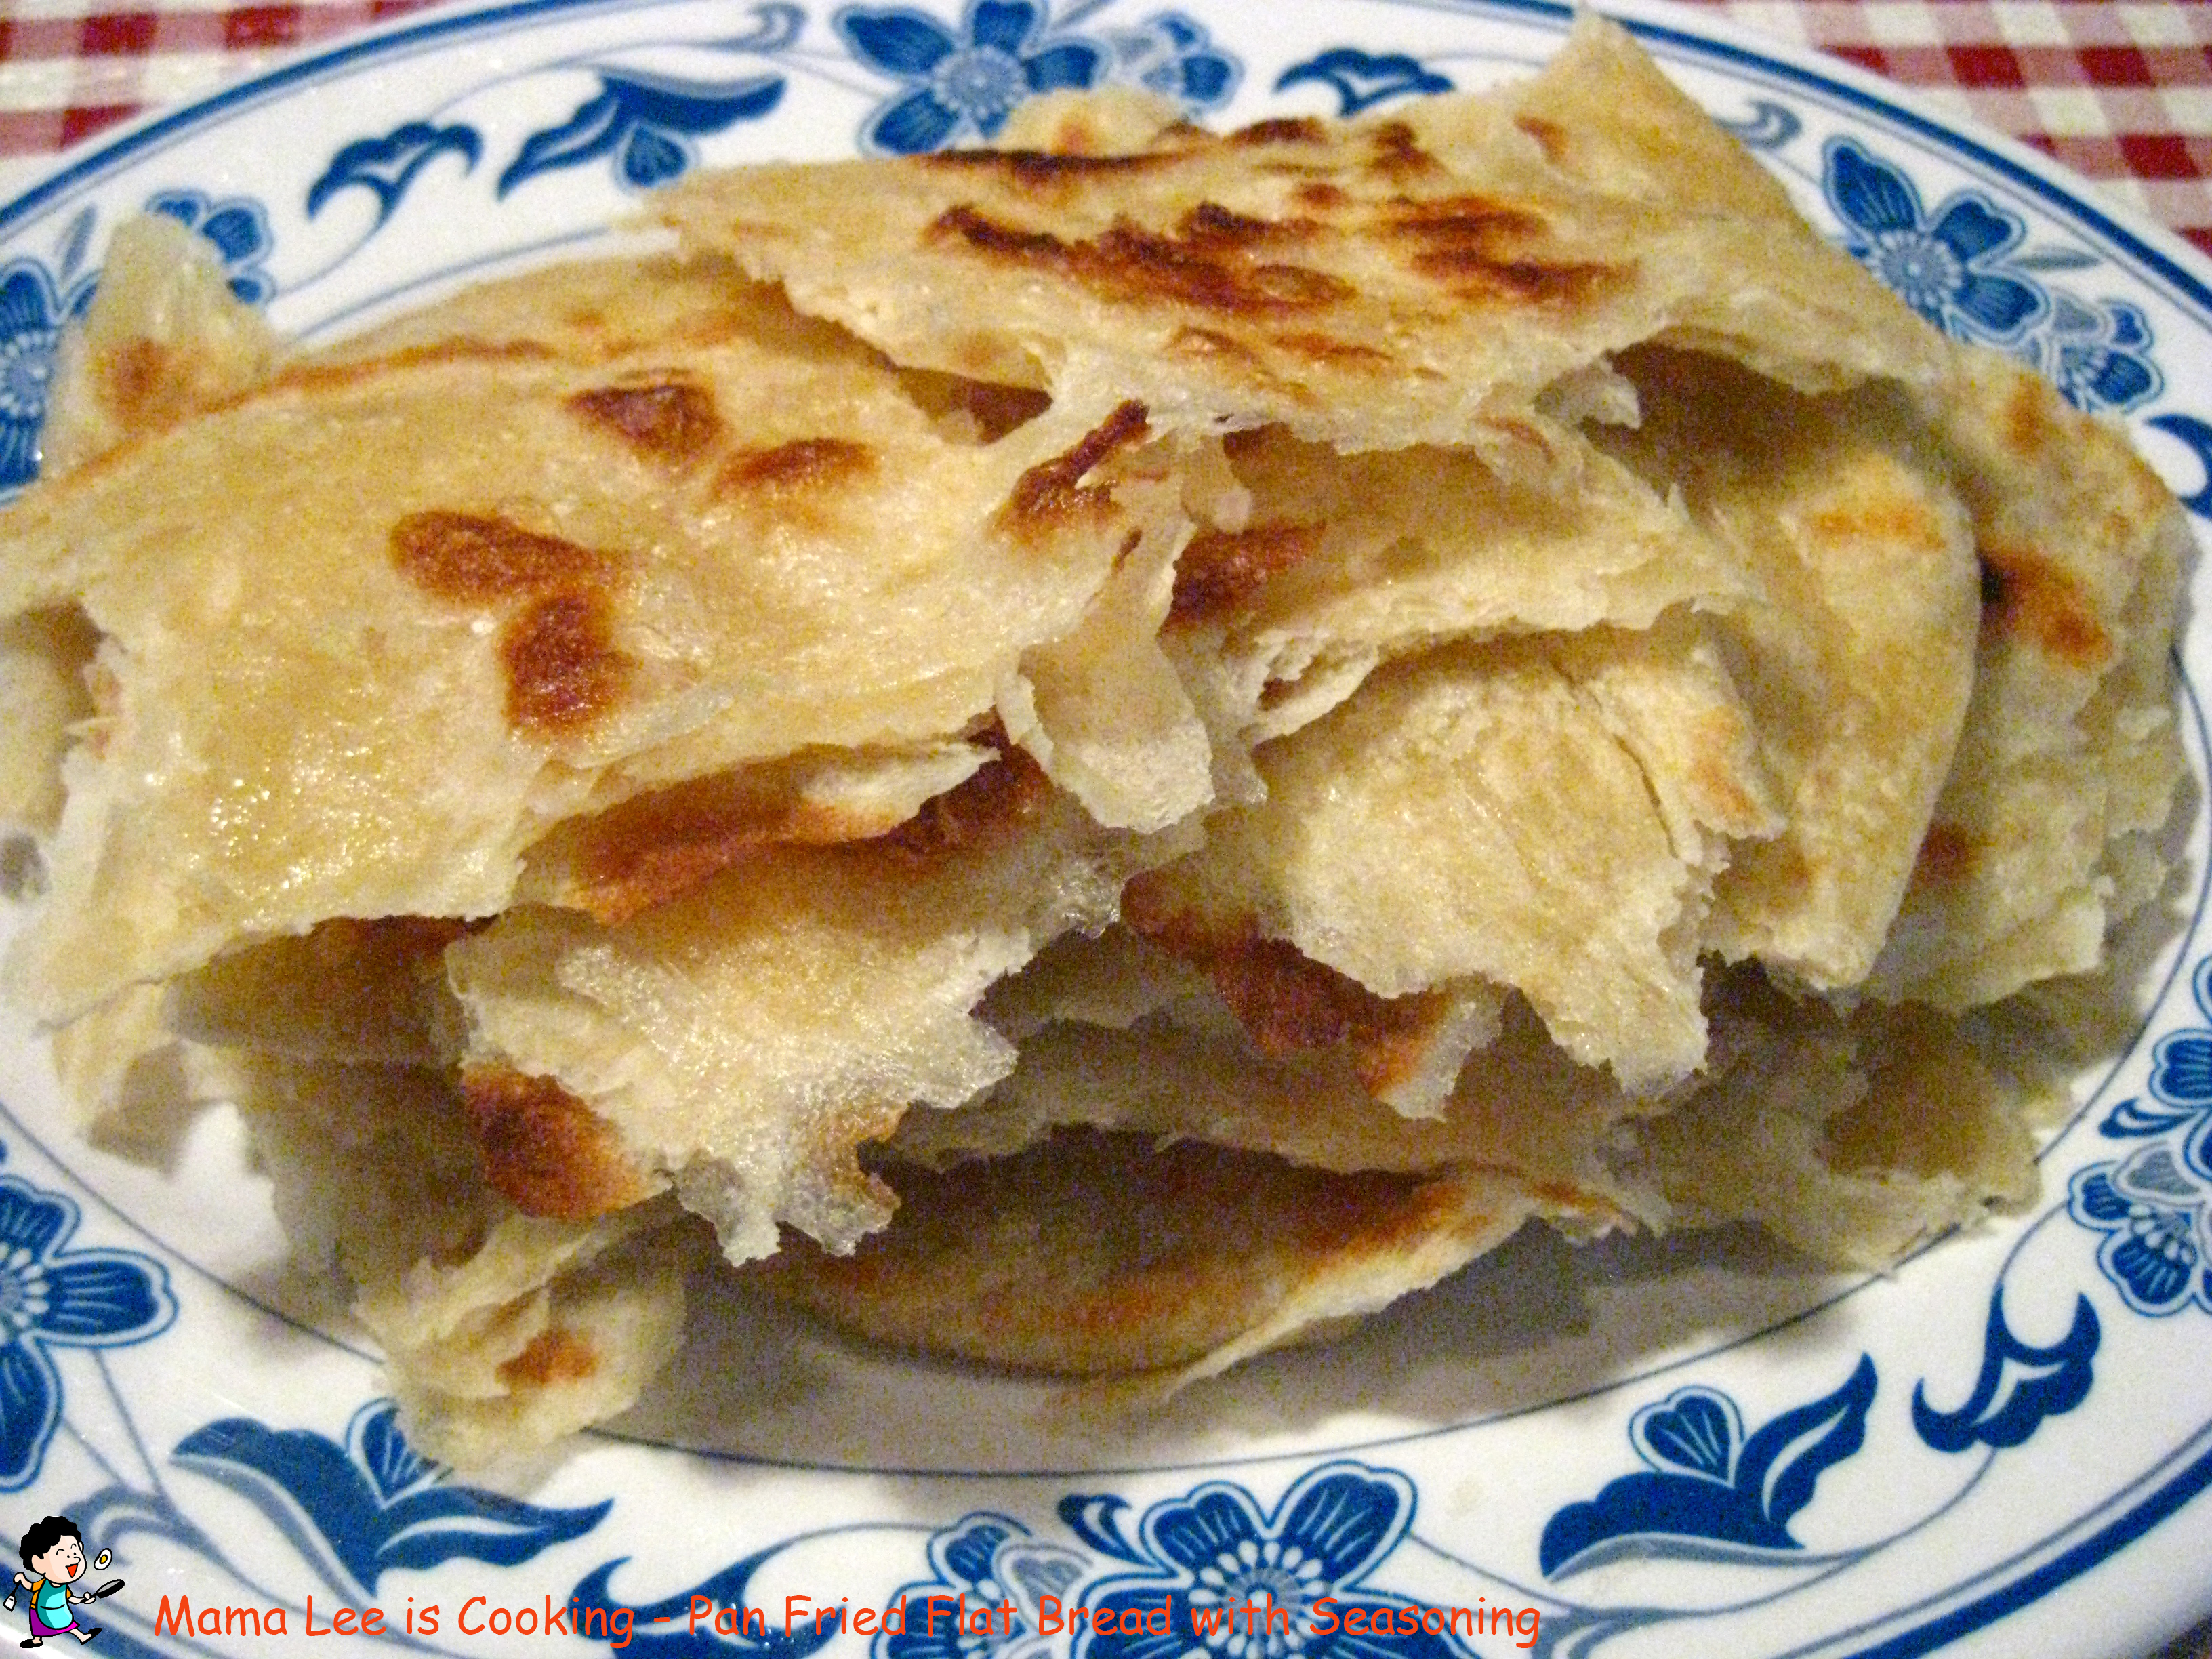 Pan Fried Flat Bread with Seasoning